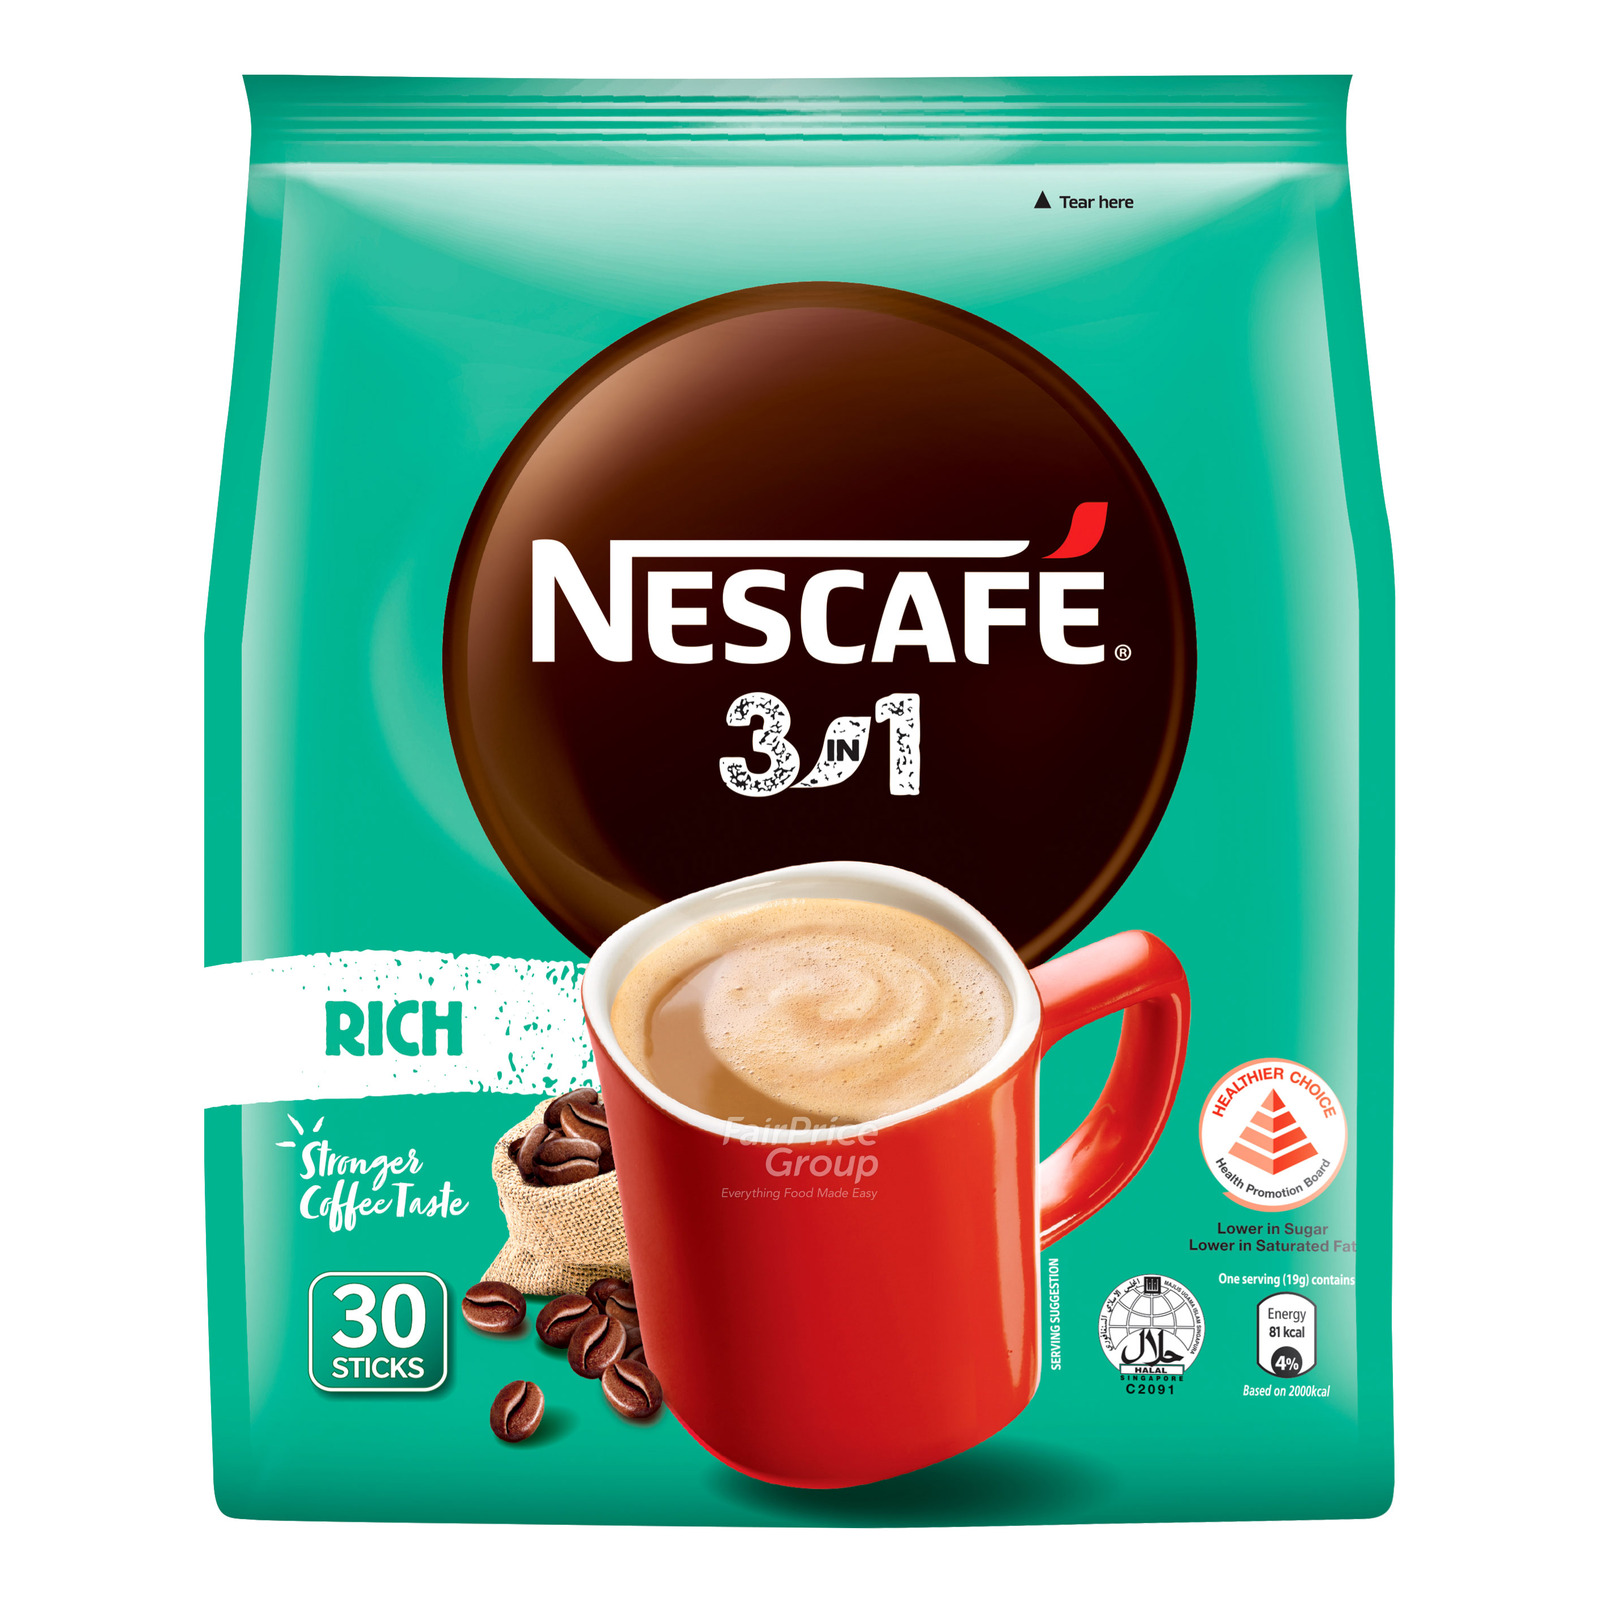 Nescafe 3 in 1 Instant Coffee - Blend & Brew (Rich)